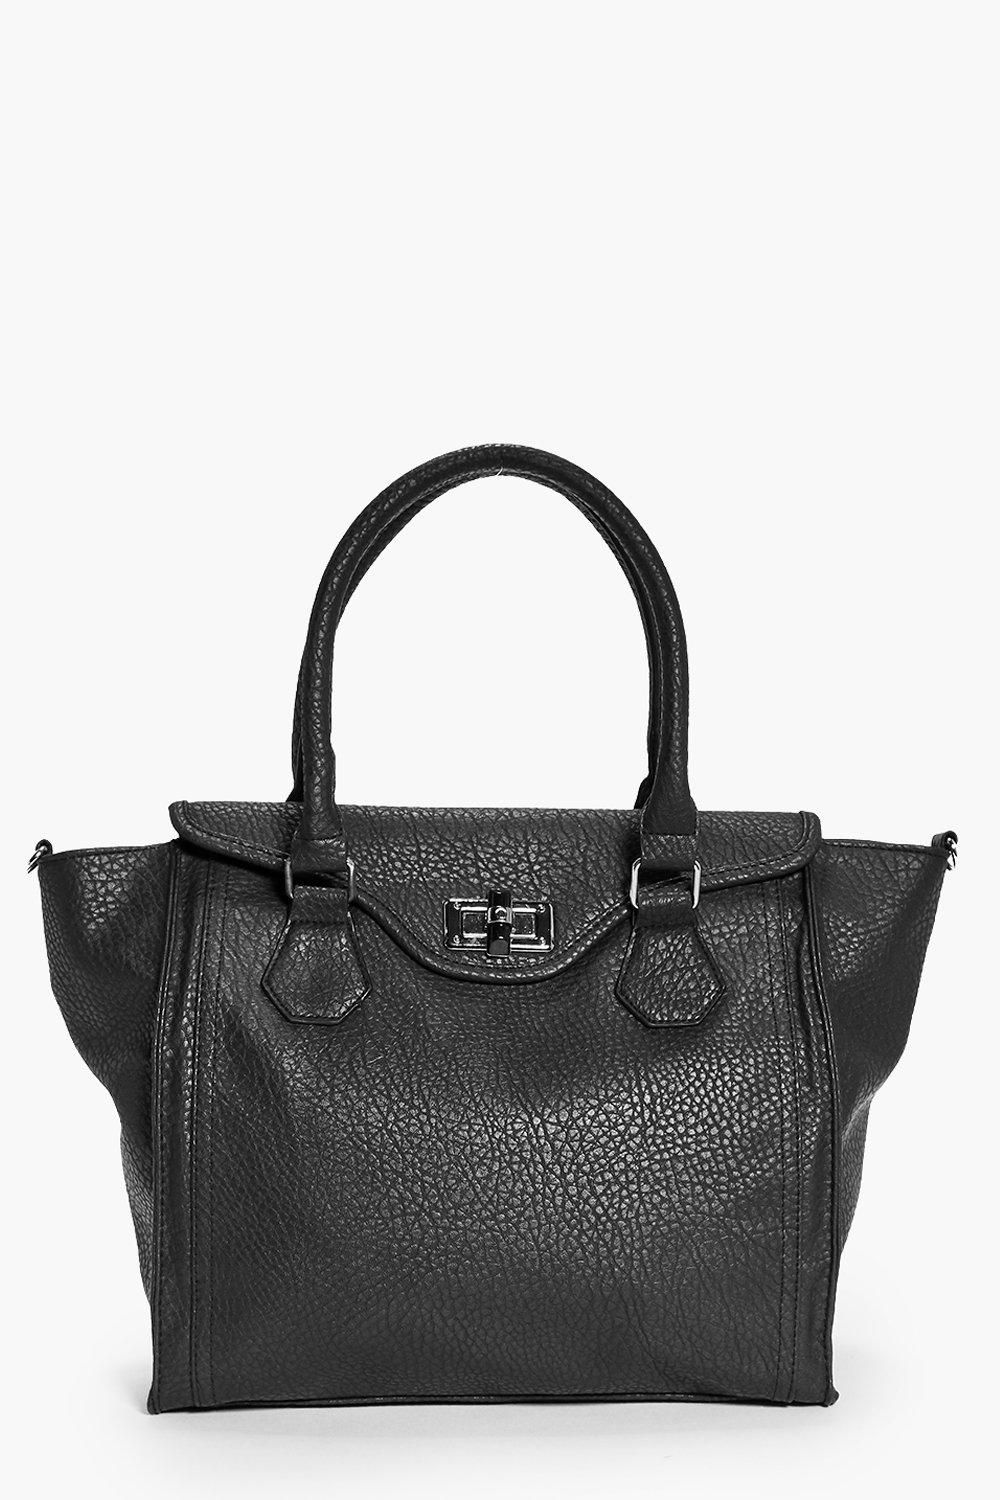 Twist Lock Winged Day Bag black